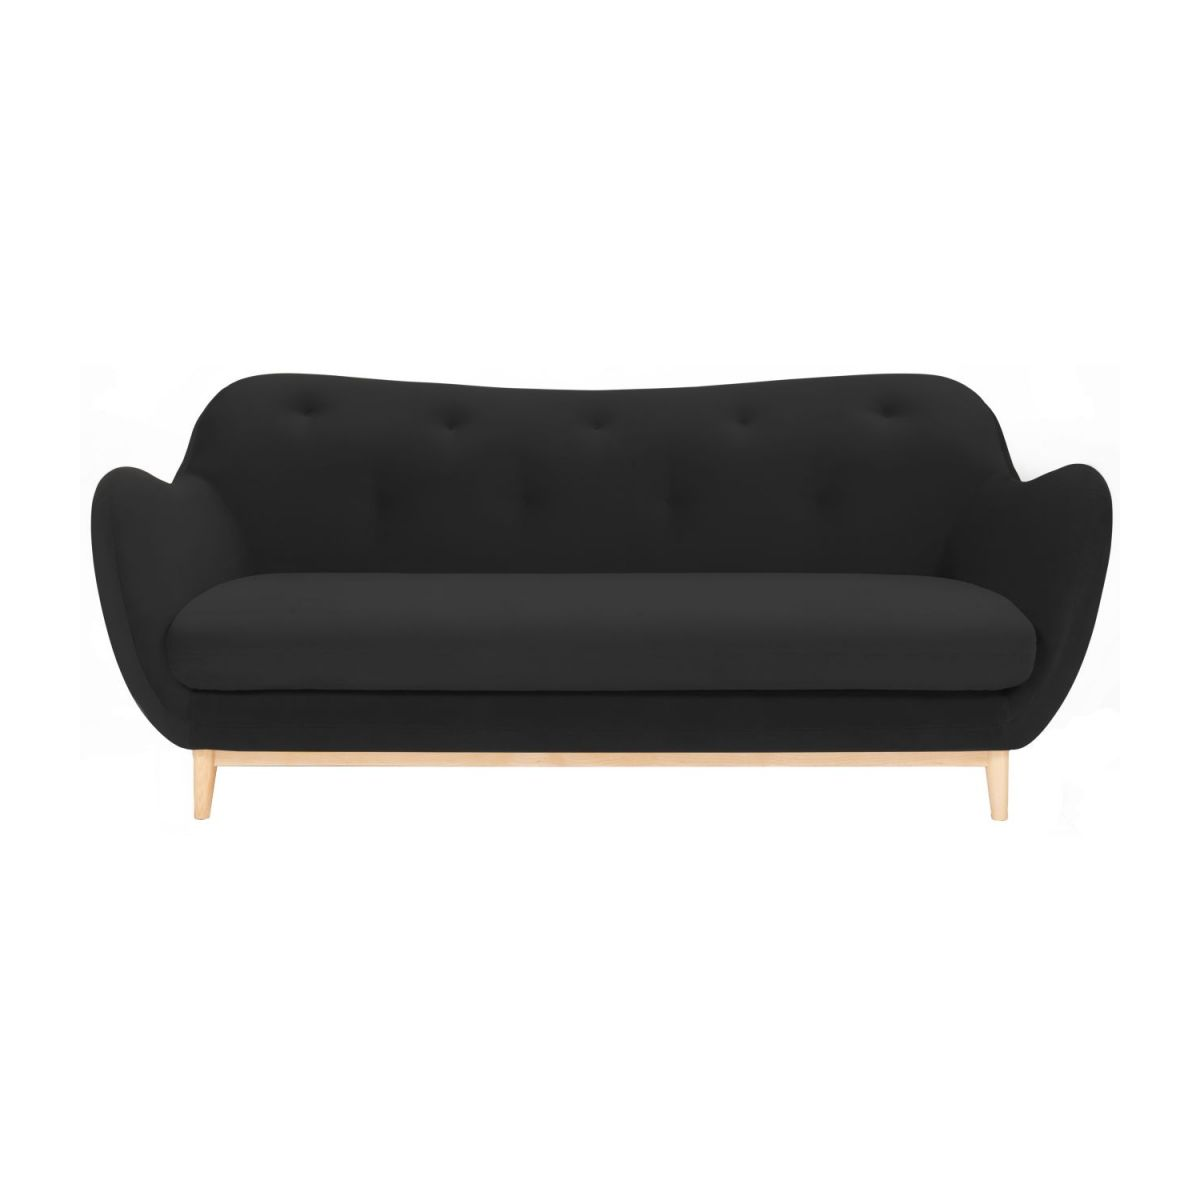 3-seat sofa made of velvet, gray n°2